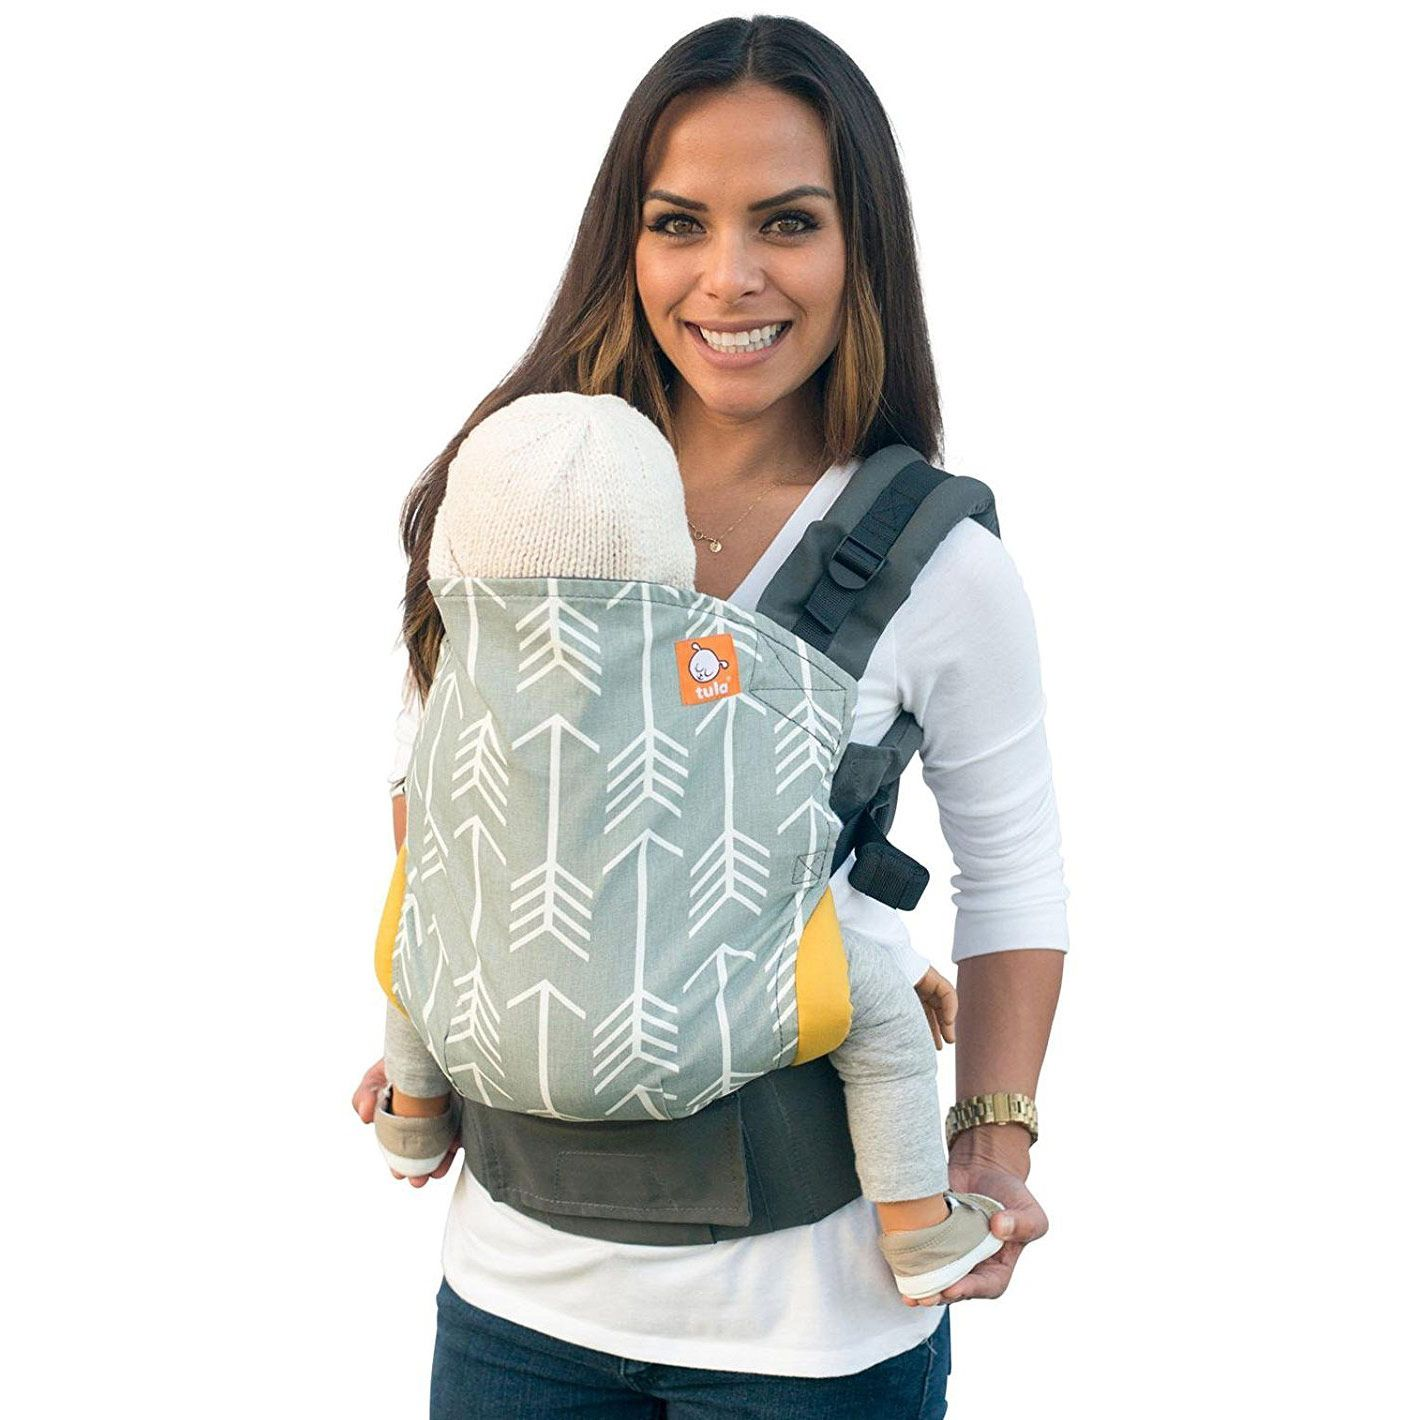 Best One Year Baby Carrier